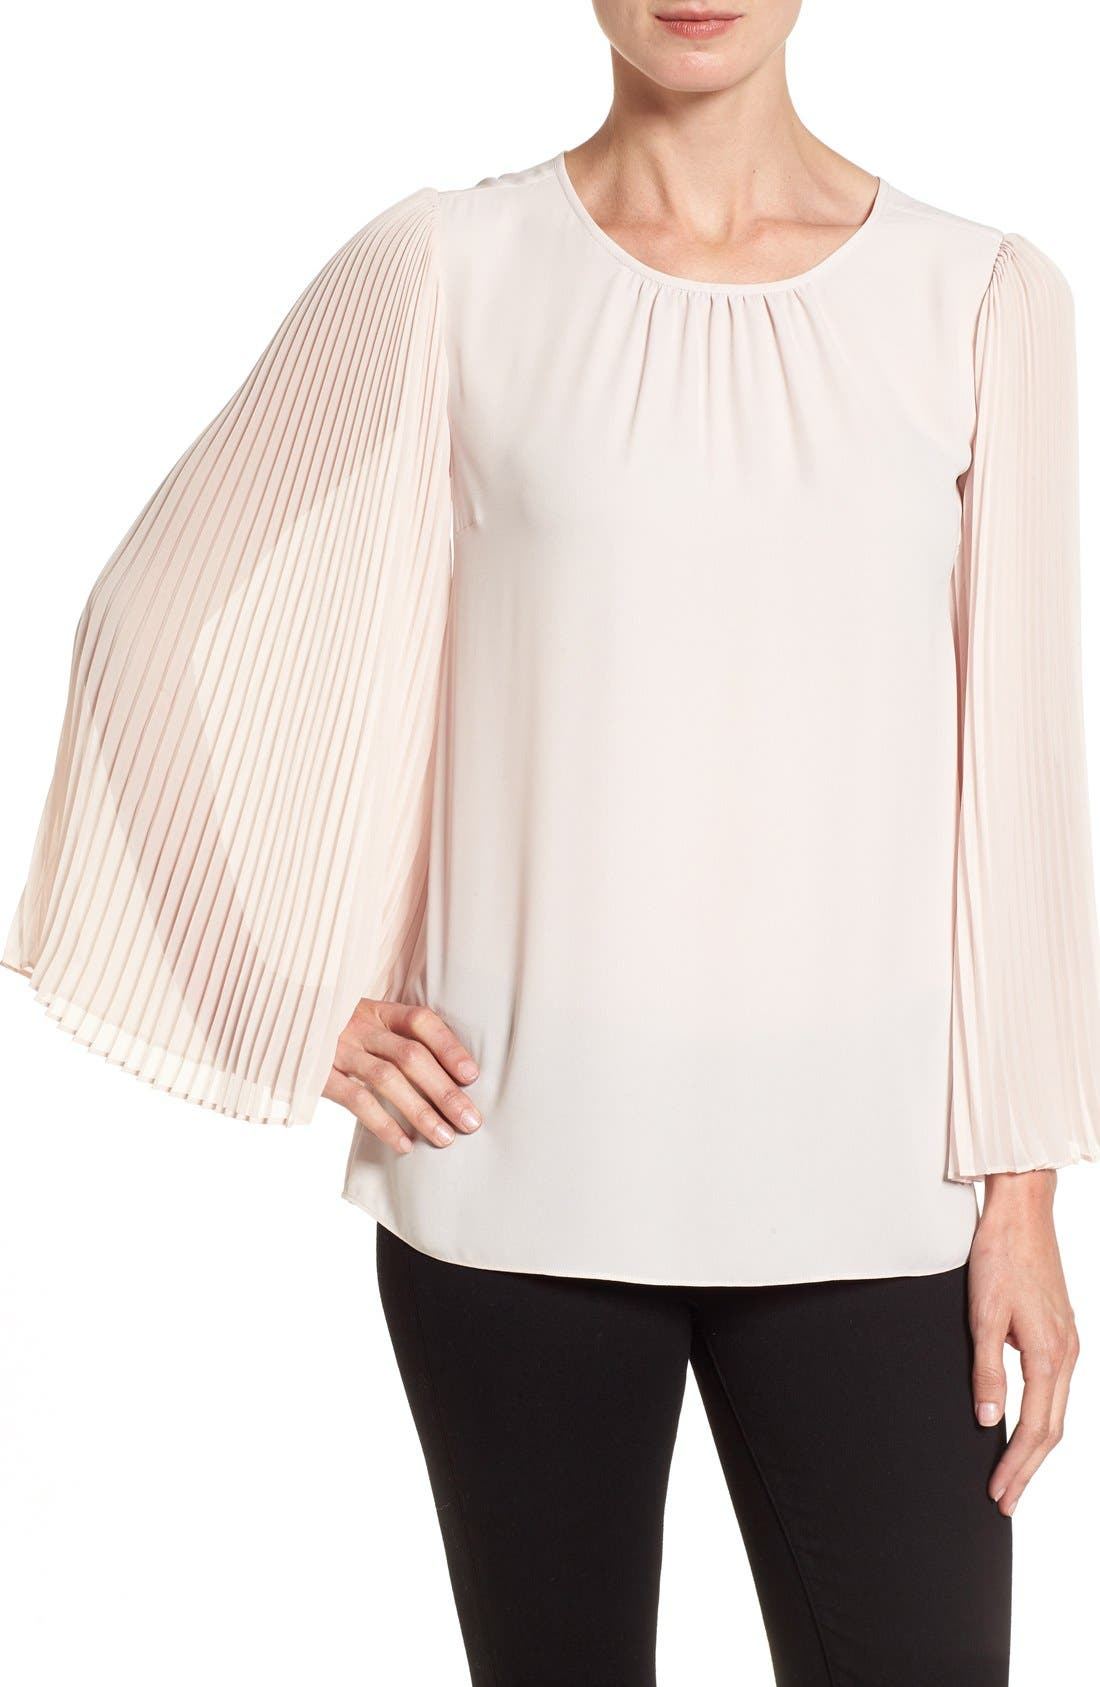 Alternate Image 1 Selected - Vince Camuto Pleated Chiffon Sleeve Blouse (Regular & Petite)